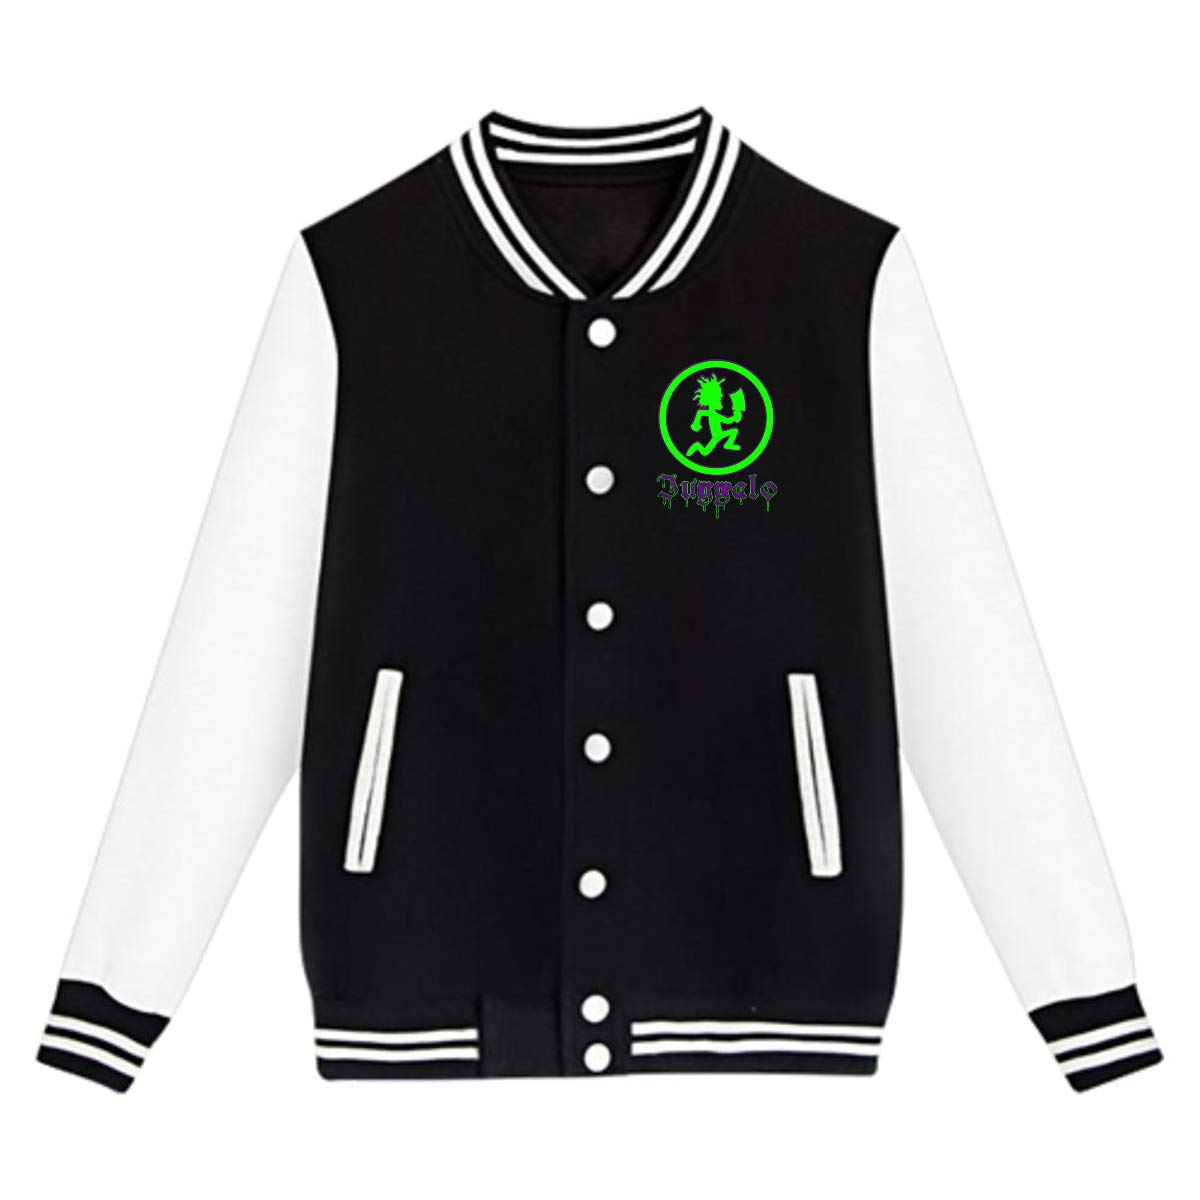 LIALUER Hatchetman ICP Boys Kids Baseball Jacket Uniform V Sweater Coat